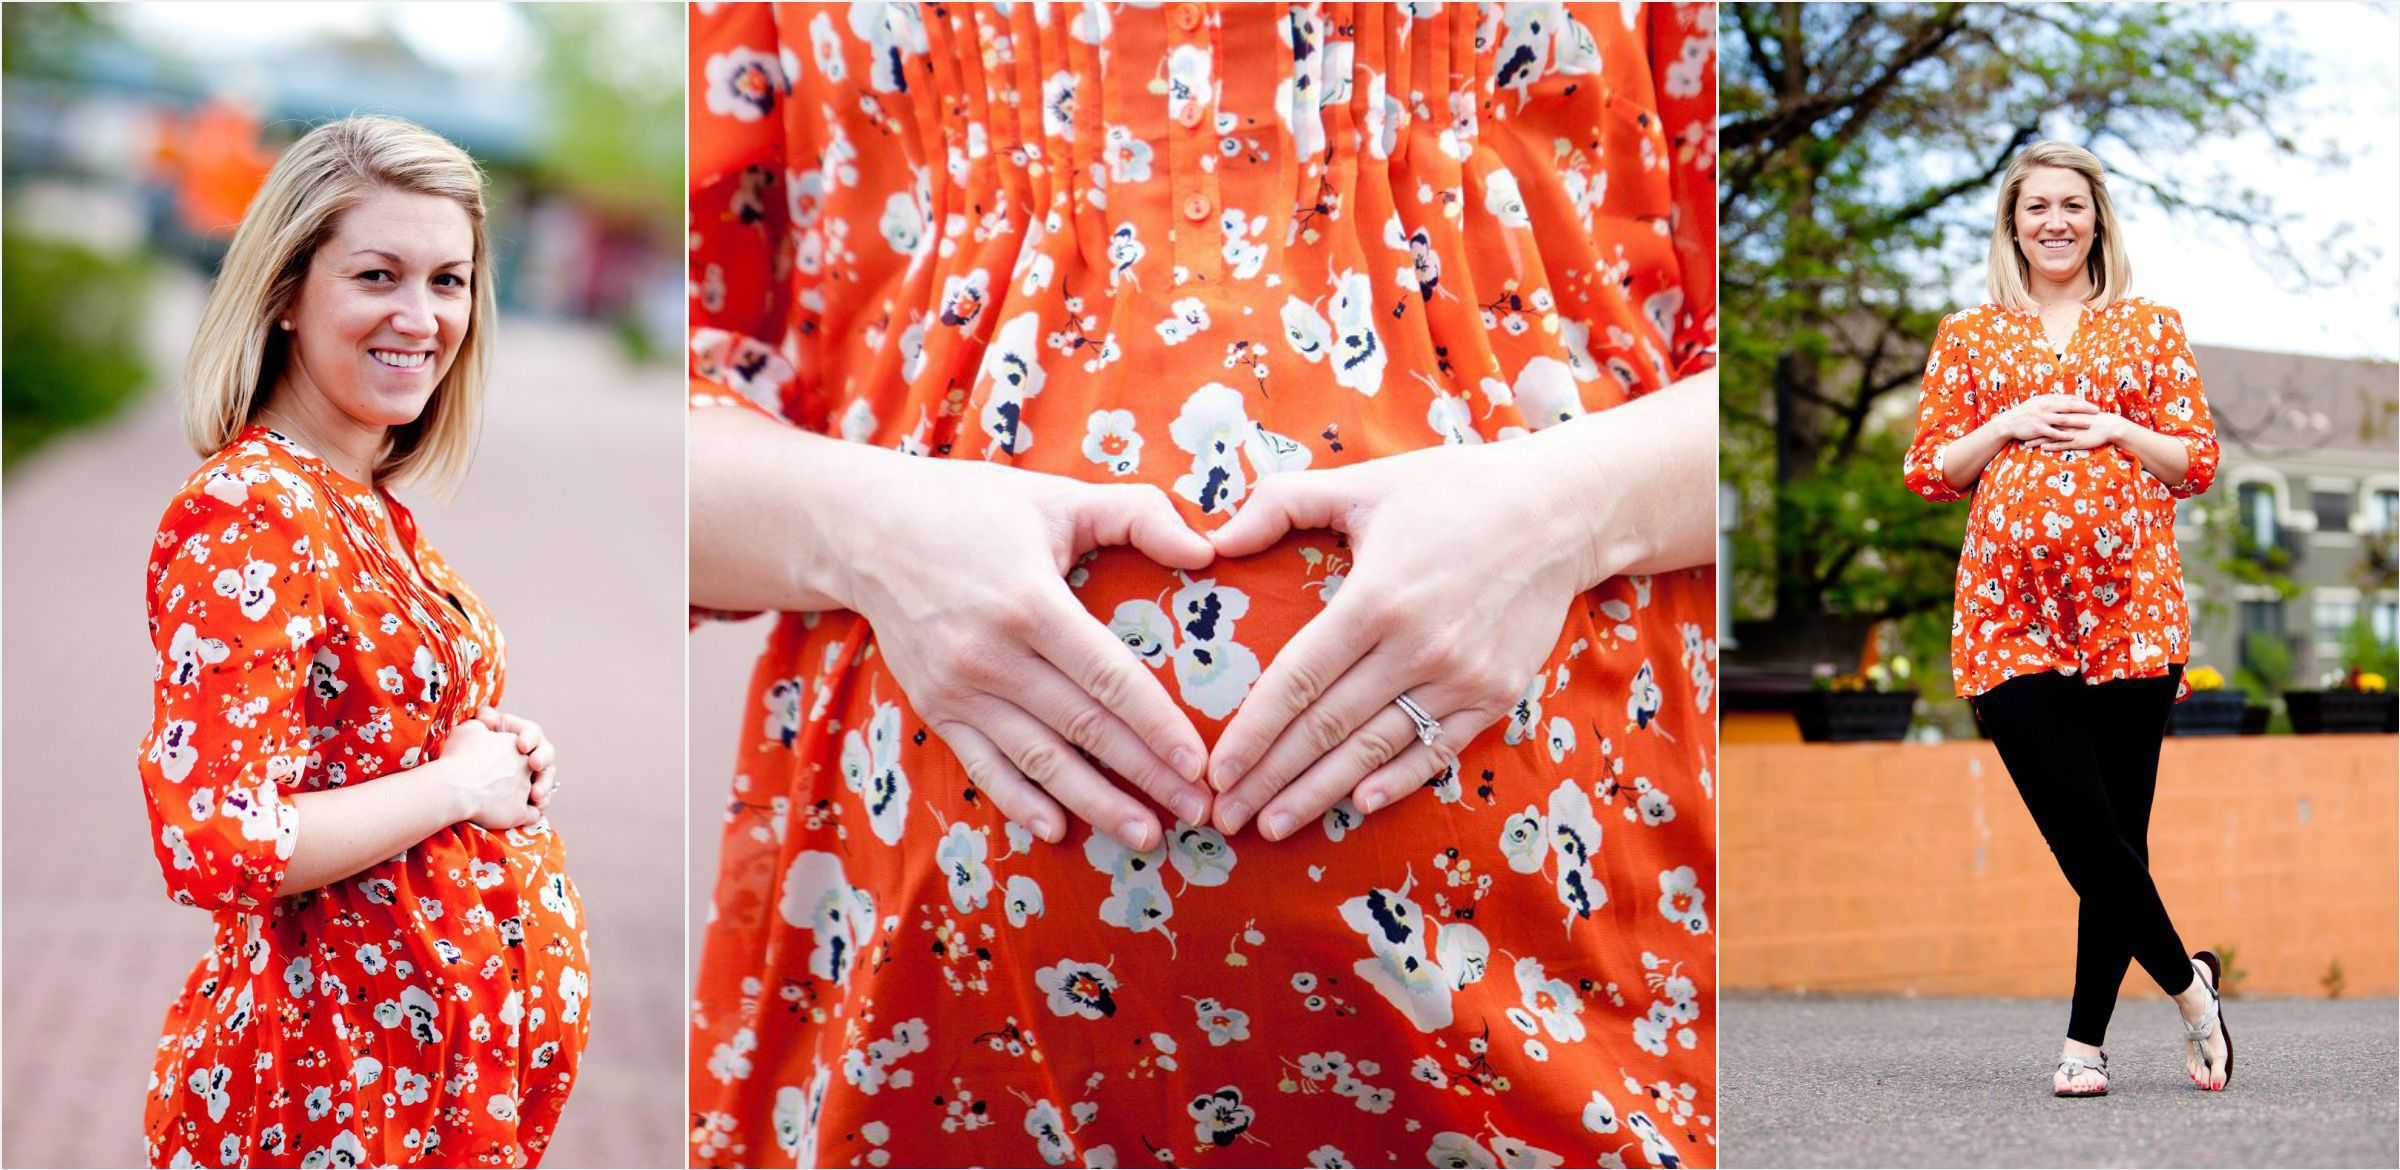 Glowing-mother-to-be-making-a-hear-shape-on-her-baby-bump-005